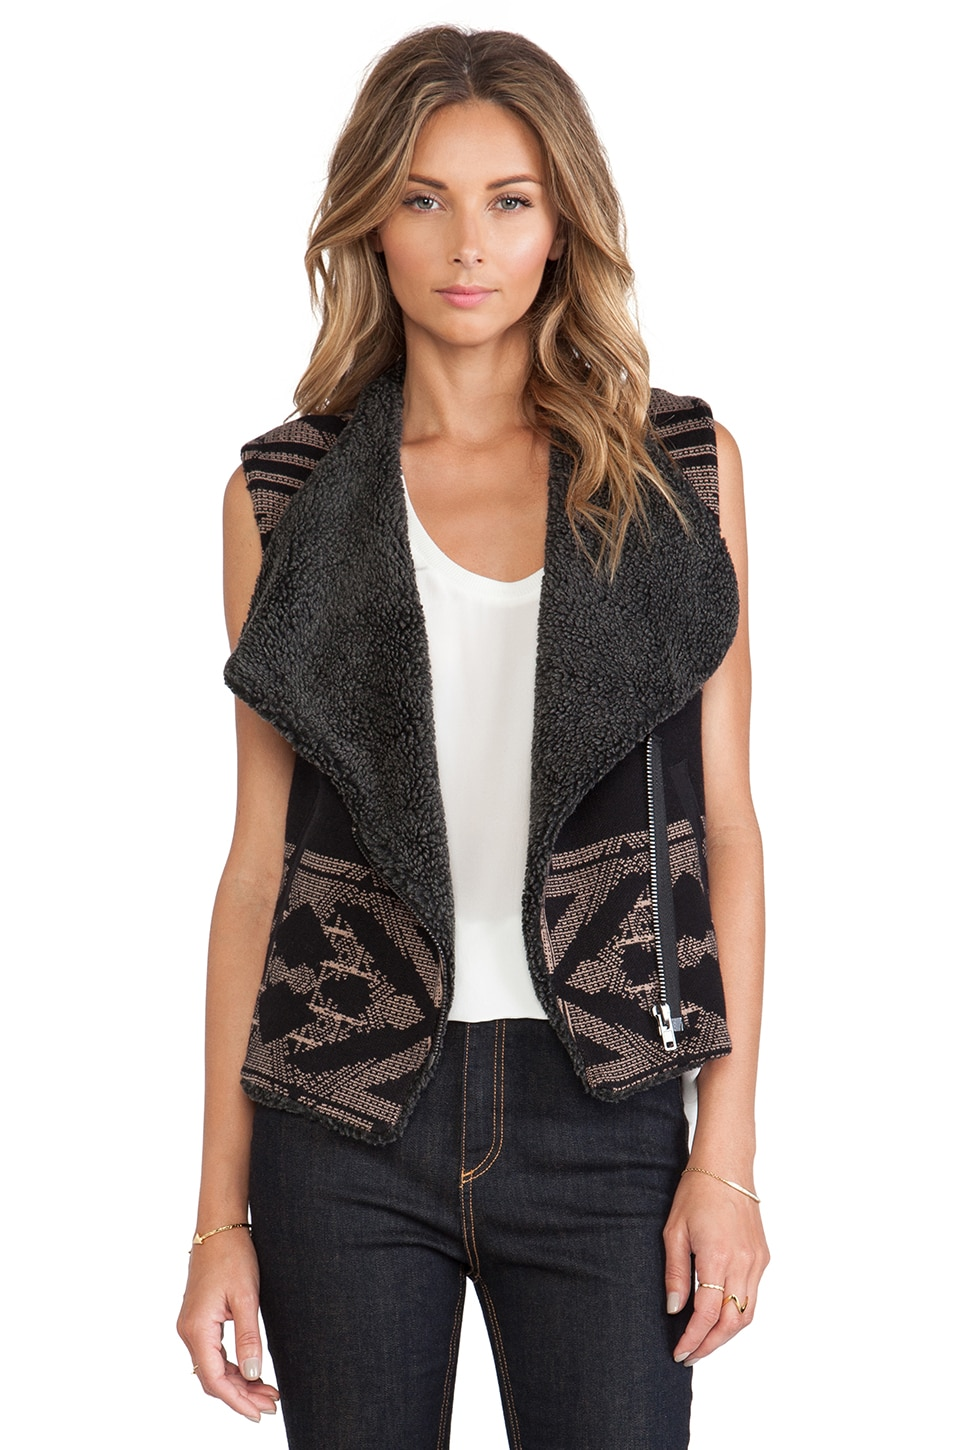 Twelfth Street By Cynthia Vincent Faux Shearling Lined Sweater Vest in Black